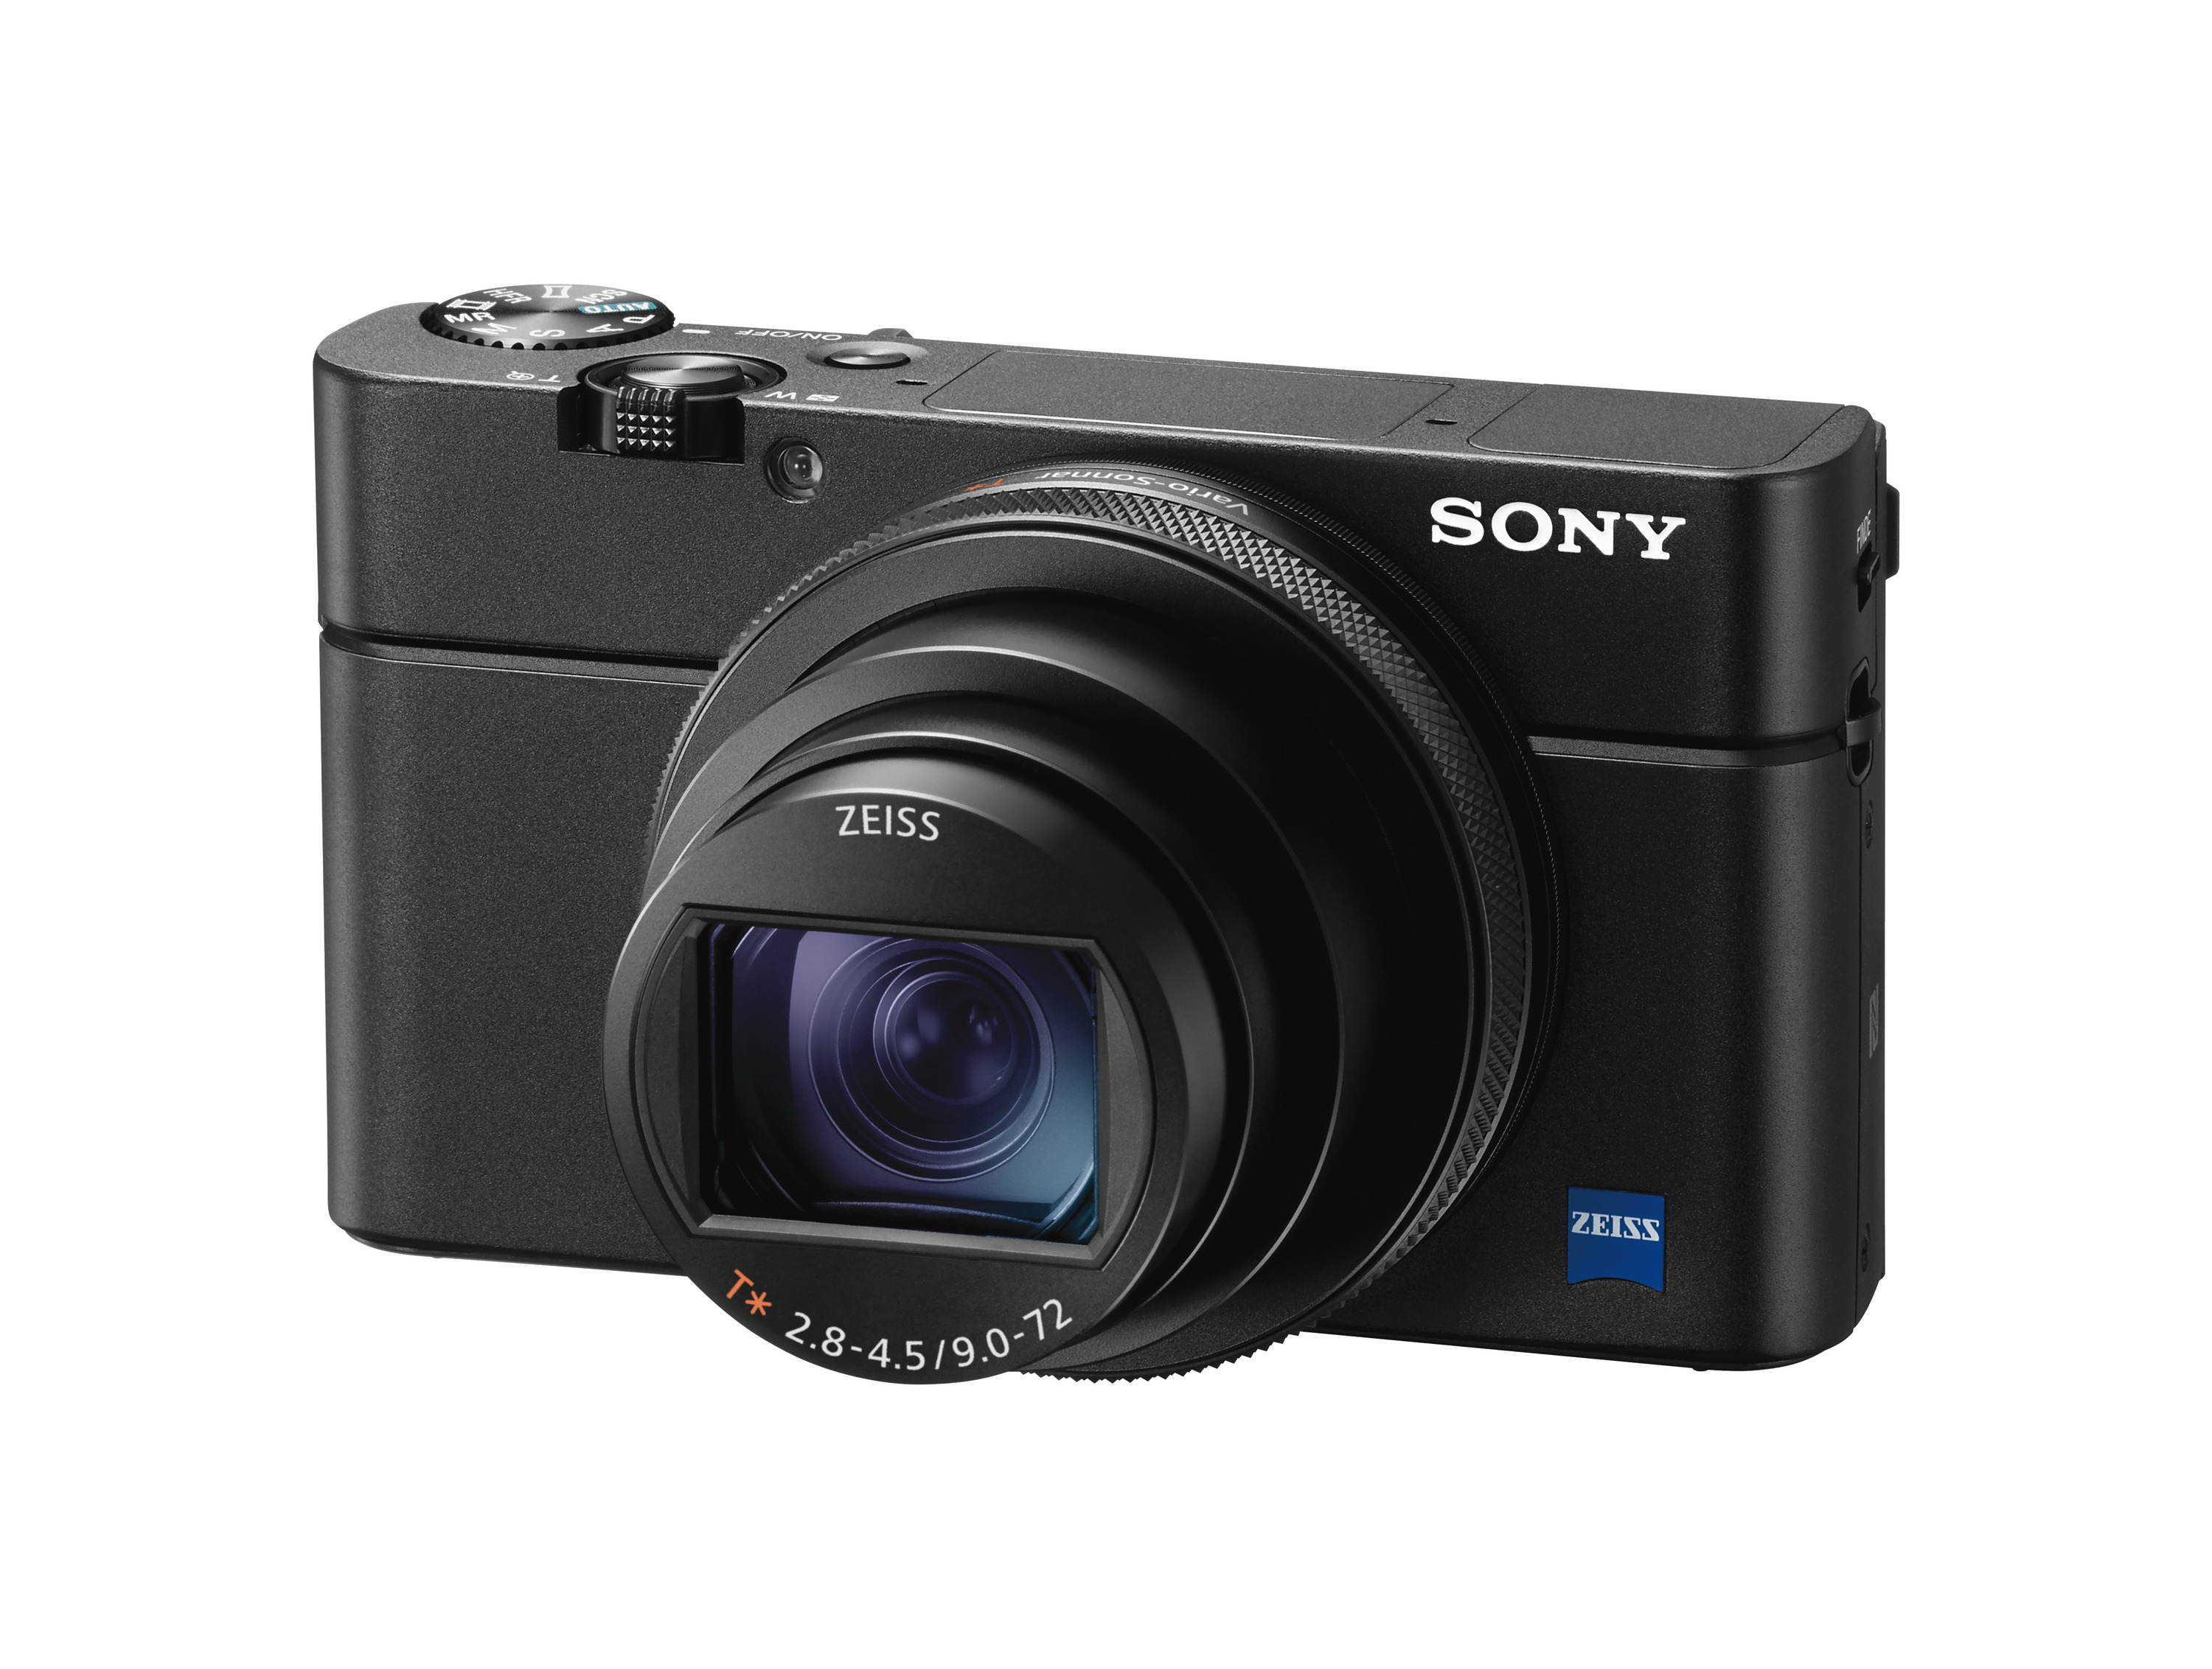 Sony's New RX100 VI Combines Versatile 24-200mm Large Aperture,